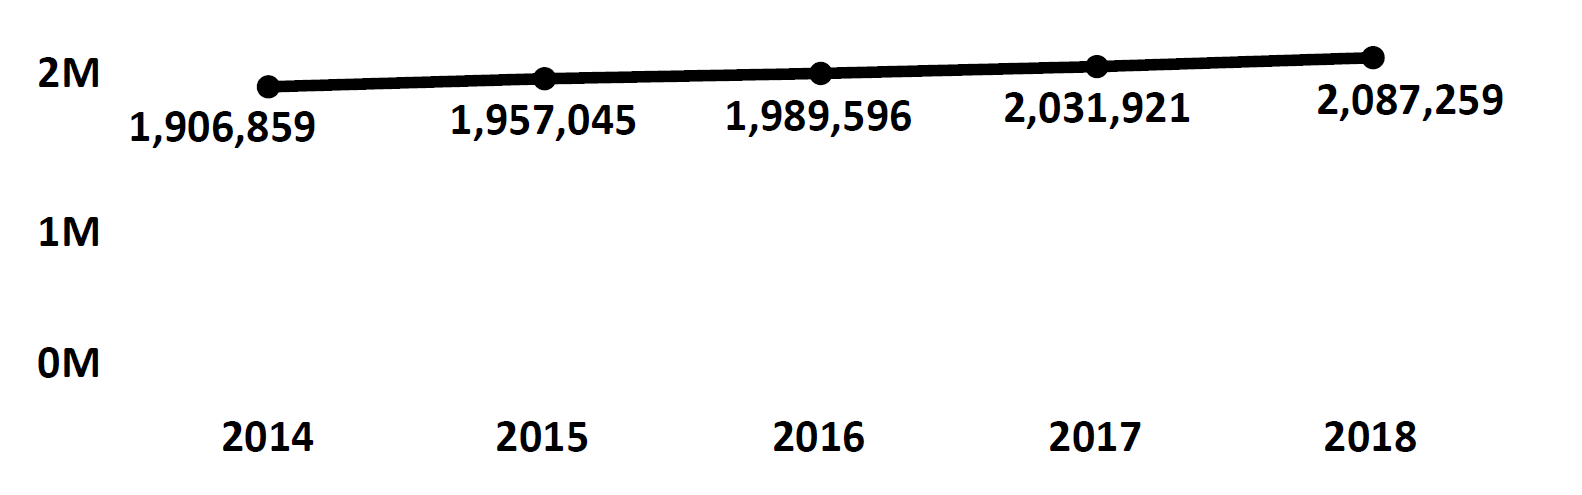 Graph of active Do Not Call registrations in Arkansas each fiscal year from 2014 to 2018. In 2014 there were 1.9 million numbers registered, which increased steadily each year. In 2018 there were 2 million numbers registered.